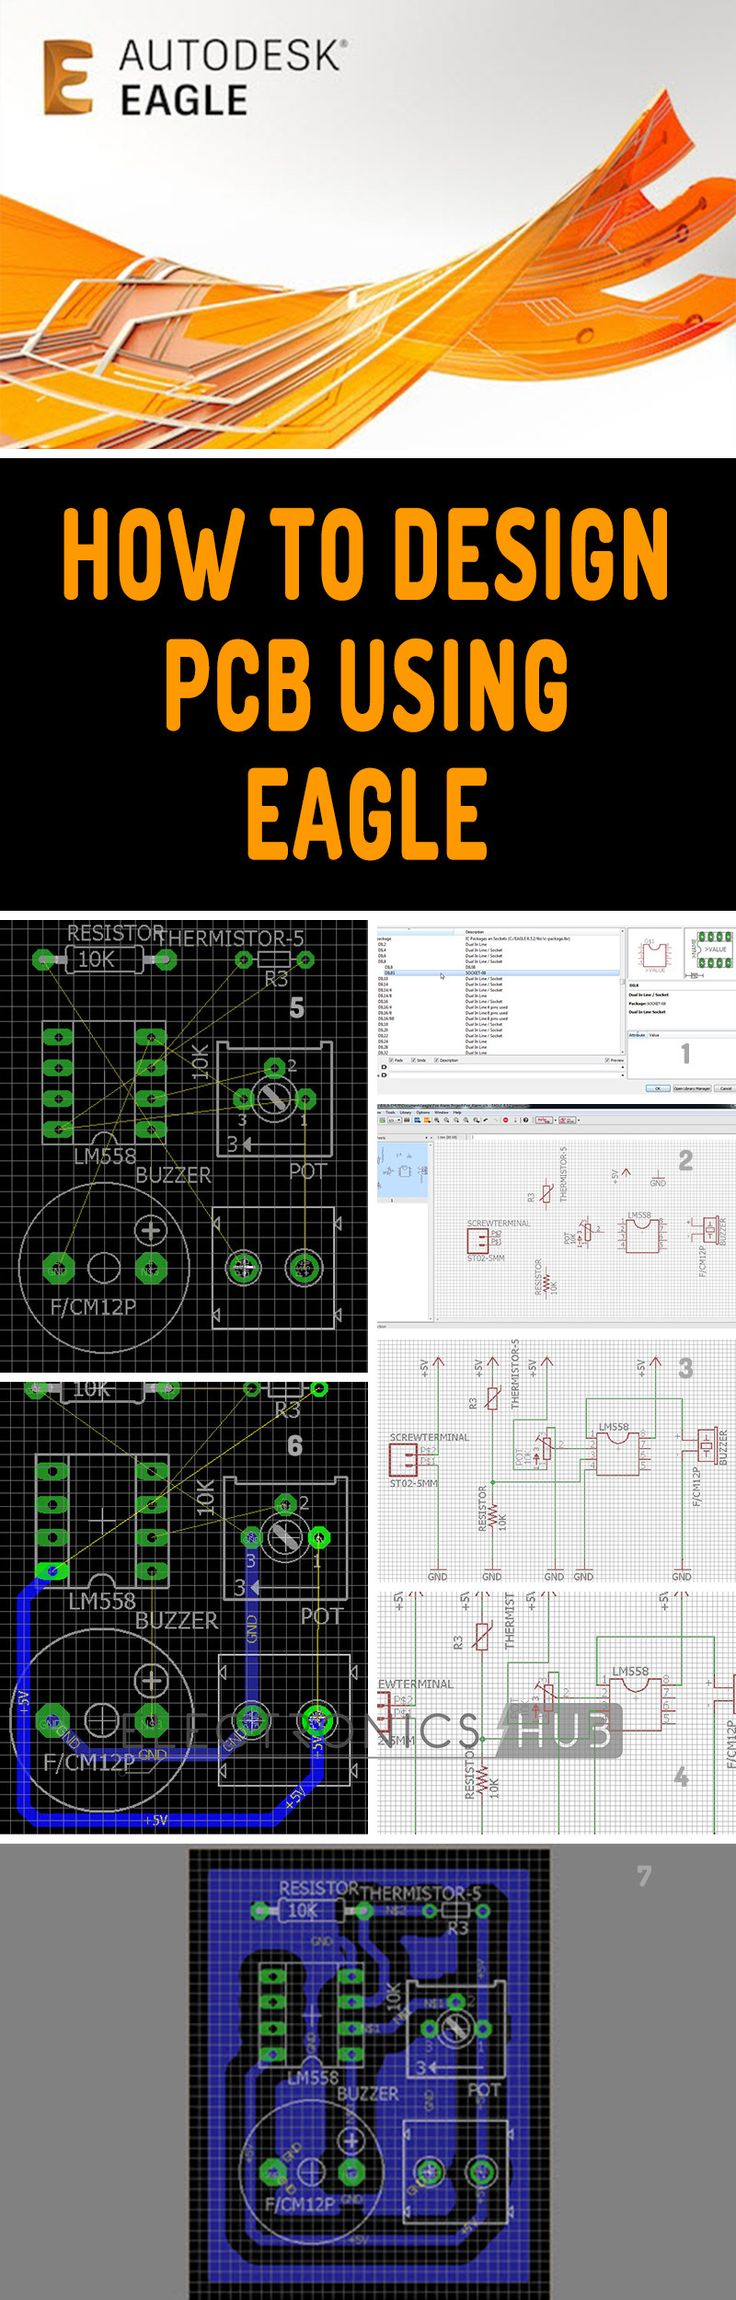 After downloading and installing the Eagle CAD (you might need to register with Autodesk), open the Eagle Software from the desktop shortcut. You will get the control Panel of the Eagle.